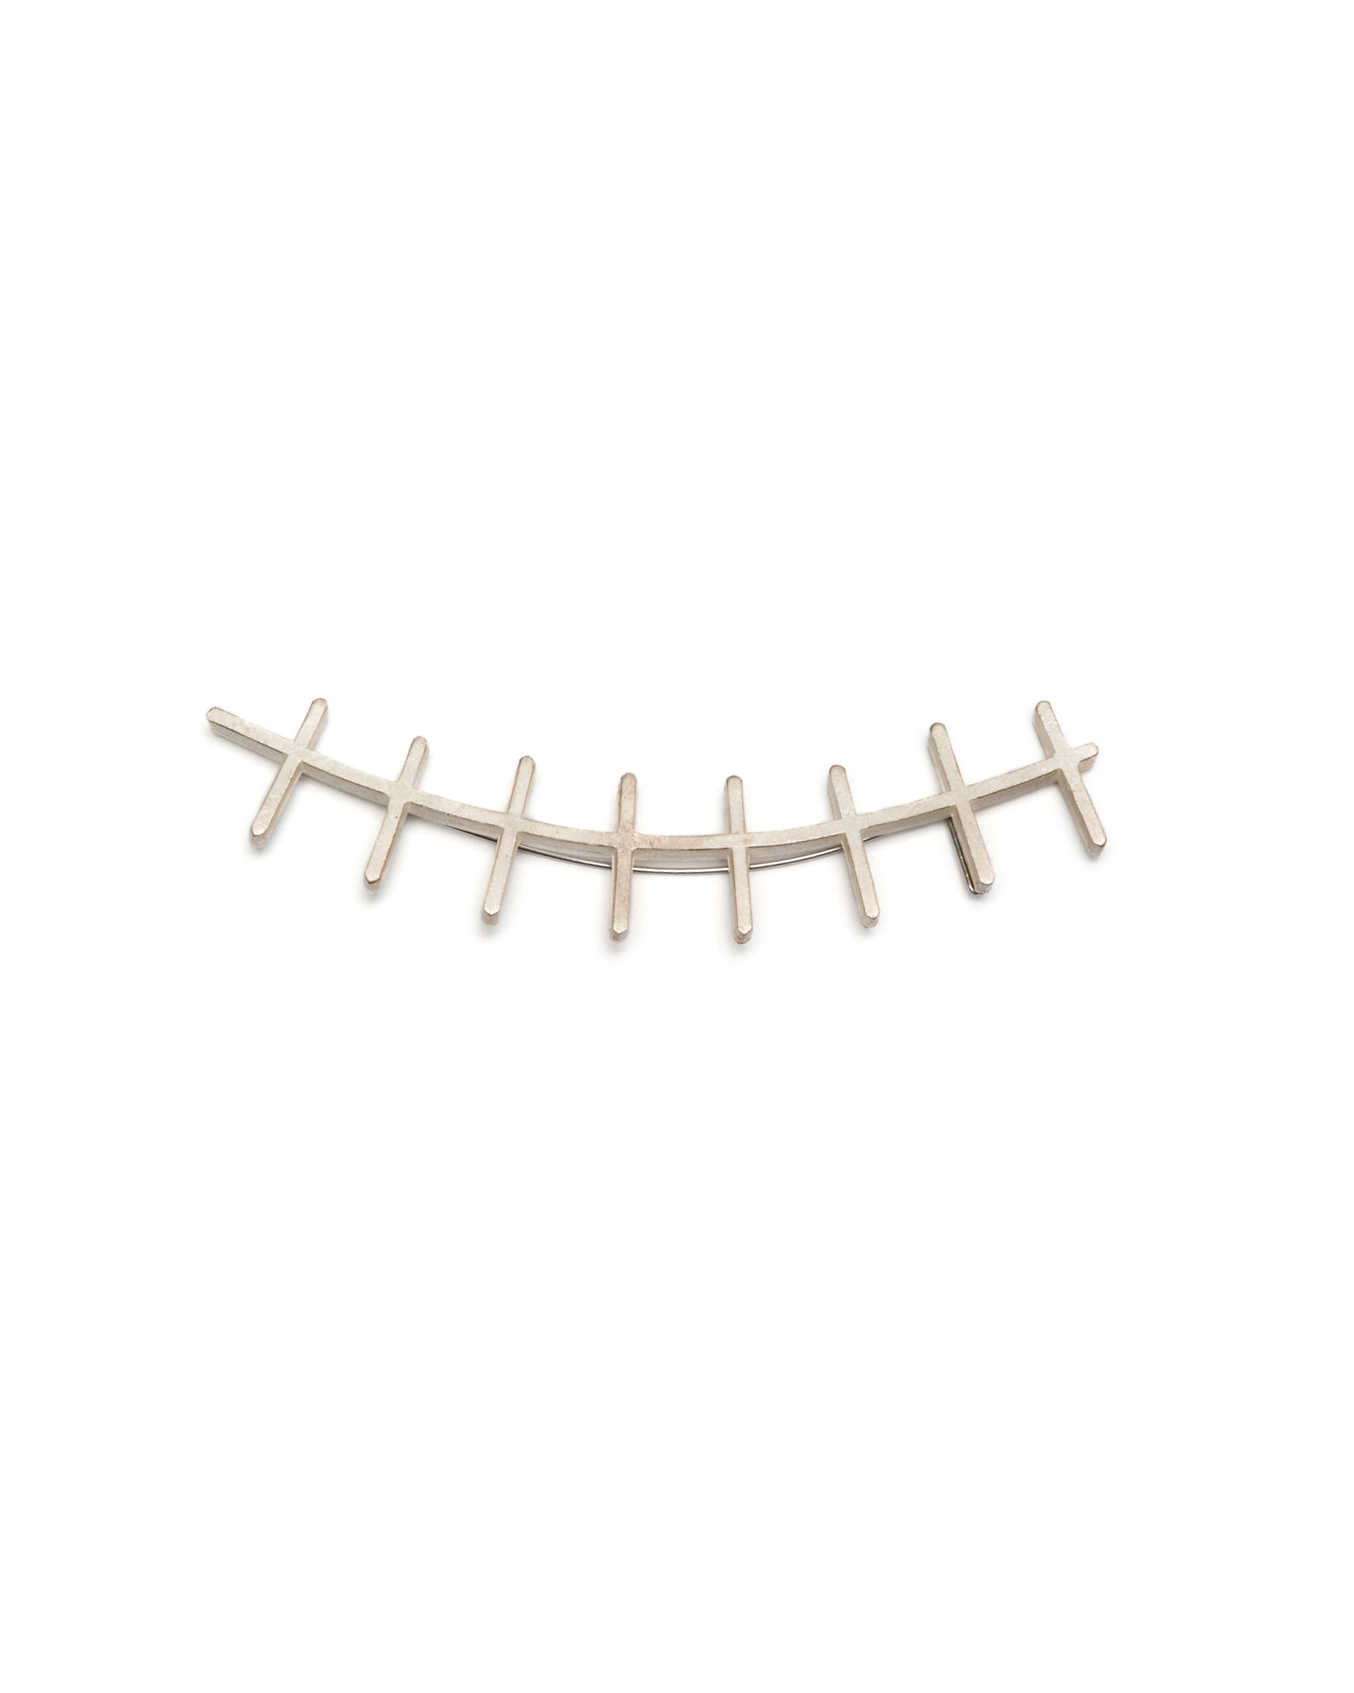 Winfried Krüger, untitled, 2003, brooch; silver, 105 x 20 mm, €875